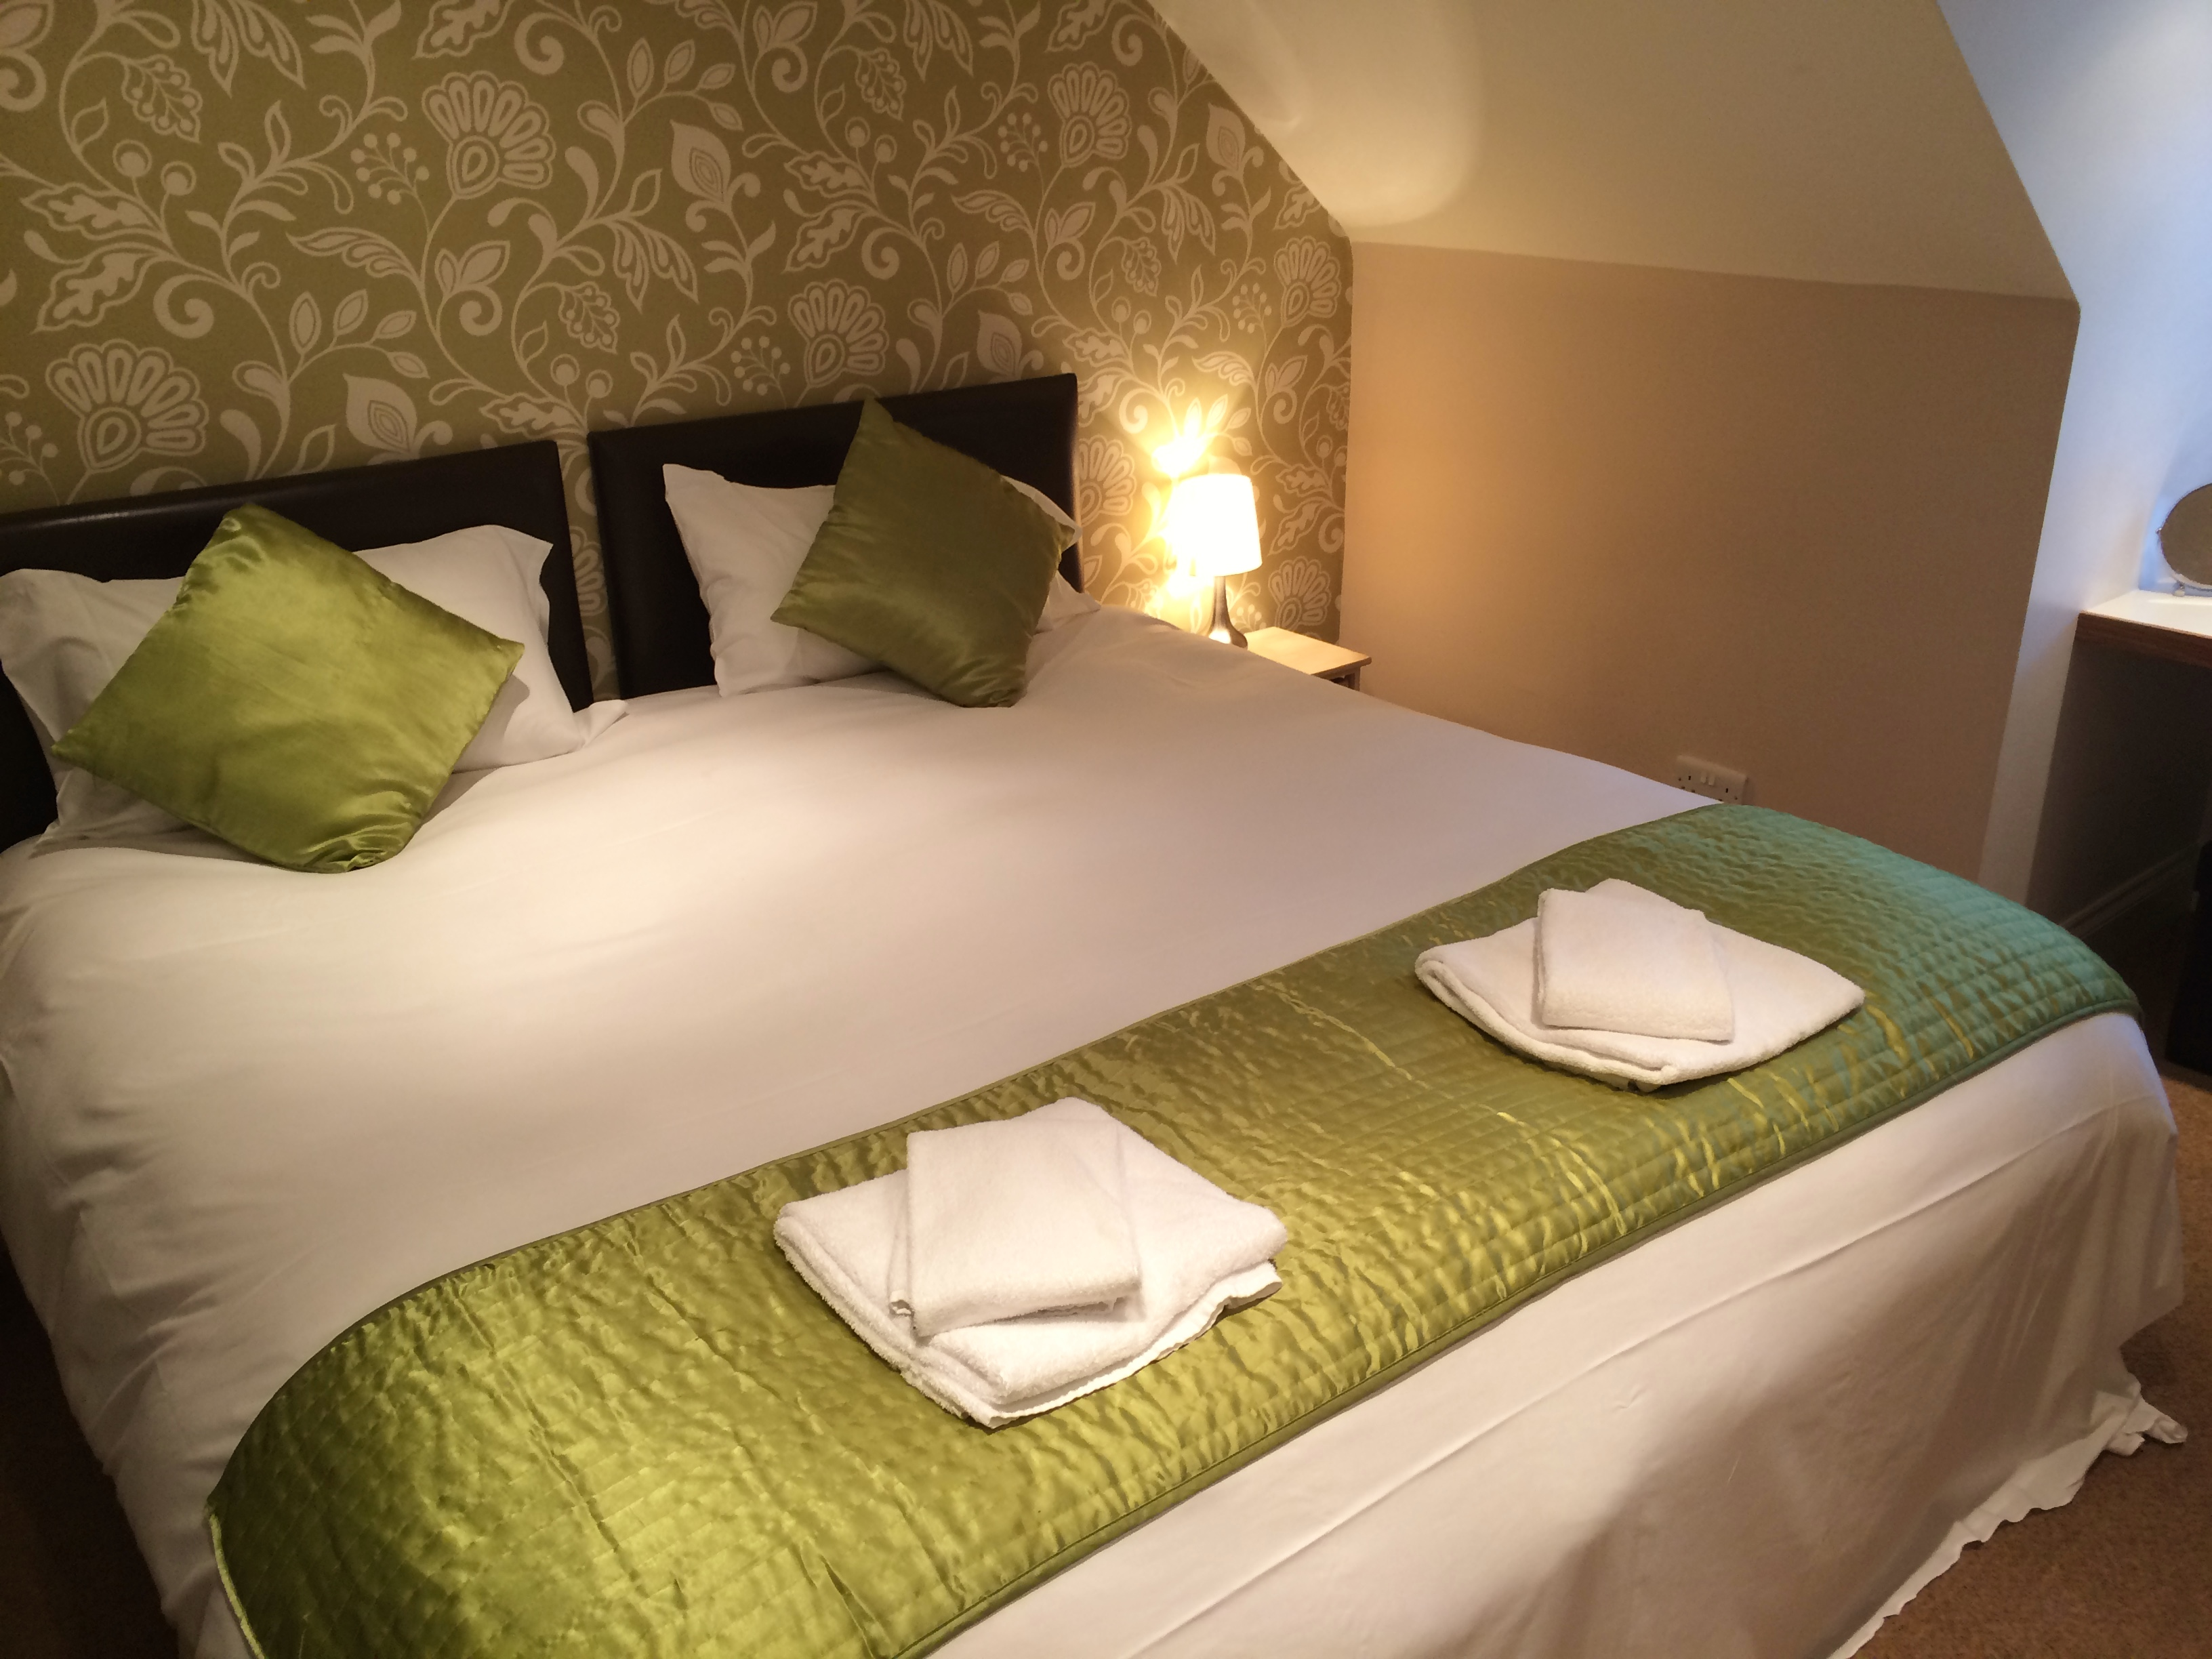 Accommodation at the House O Hill Inn Bargrennan, Newton Stewart